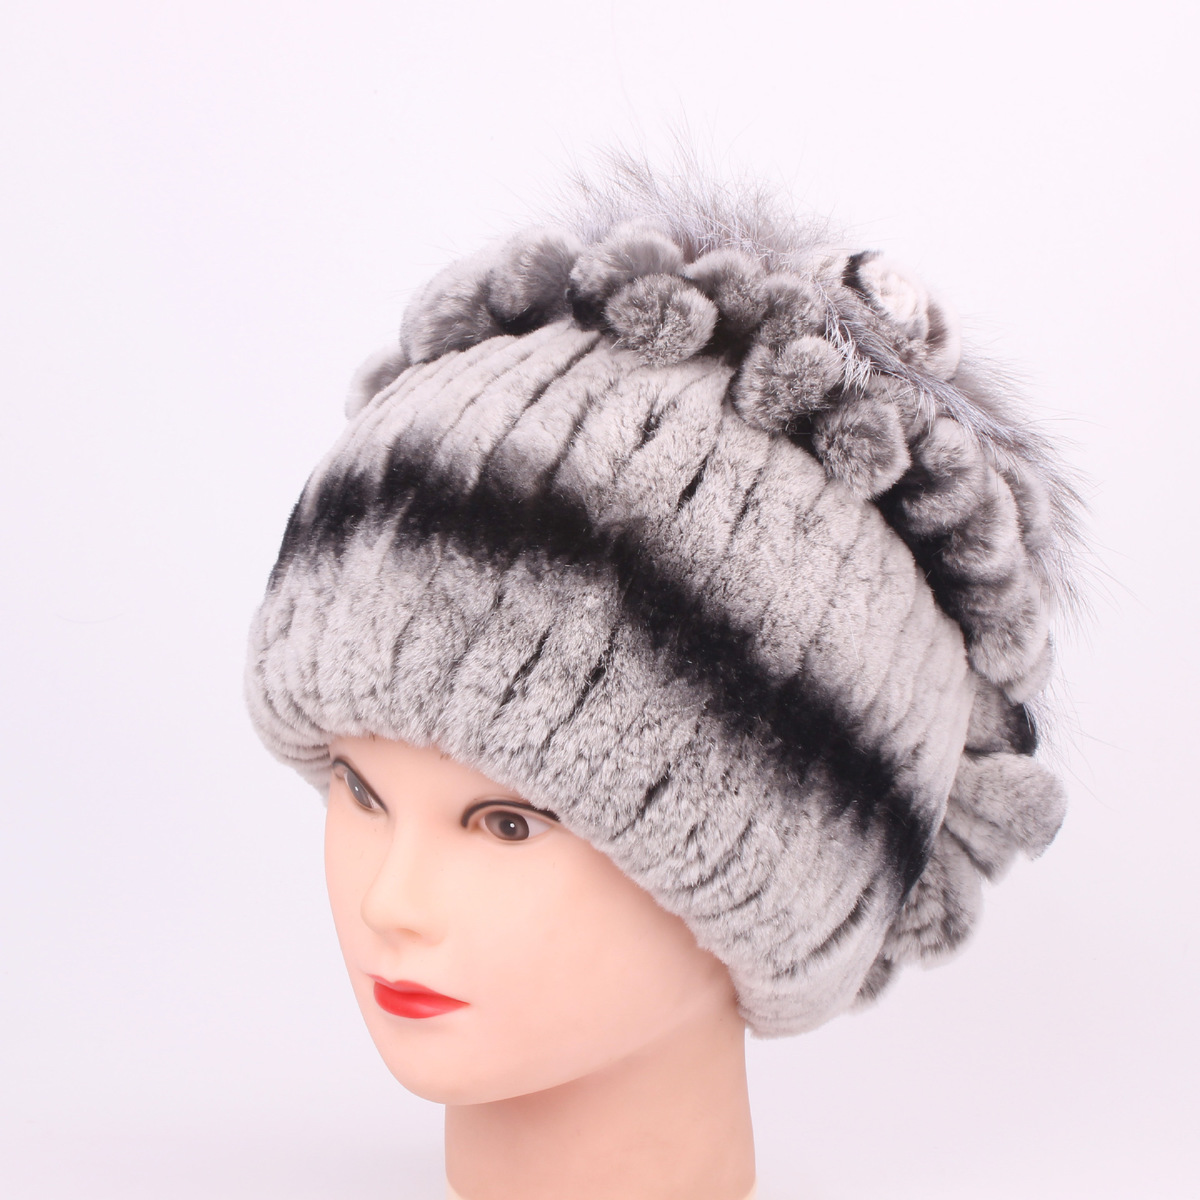 dae846645e030 Rex Rabbit s Hair Leather And Fur Ma am Hats for women High Archives  Leather And Fur Winter Keep Warm Fox Woman hat female